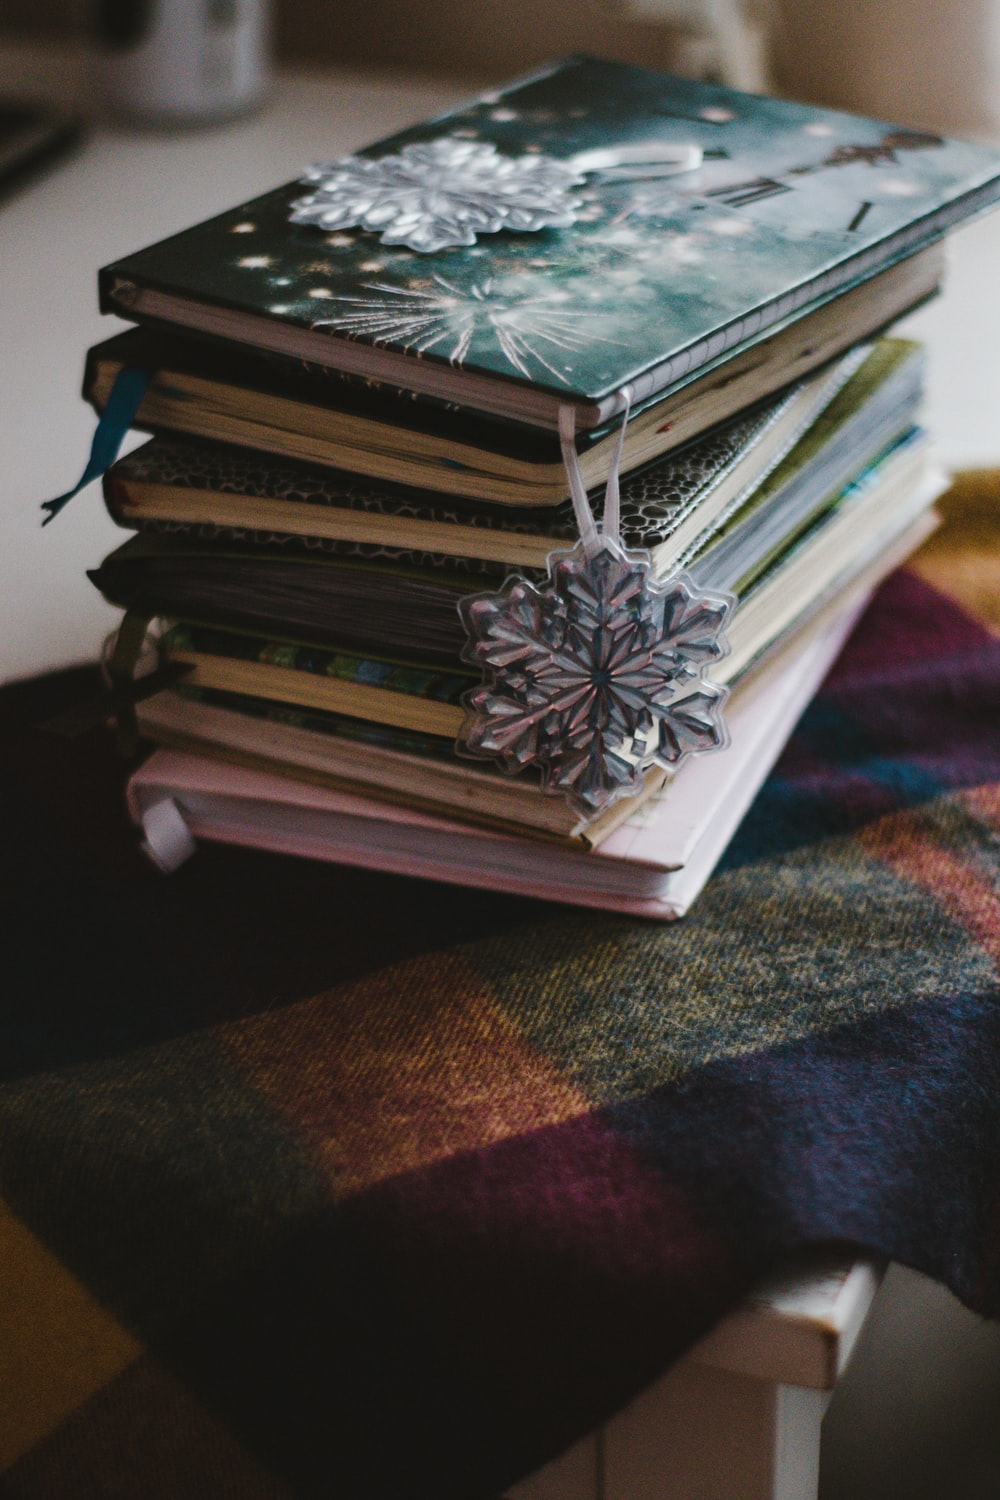 stack of books on brown and black textile